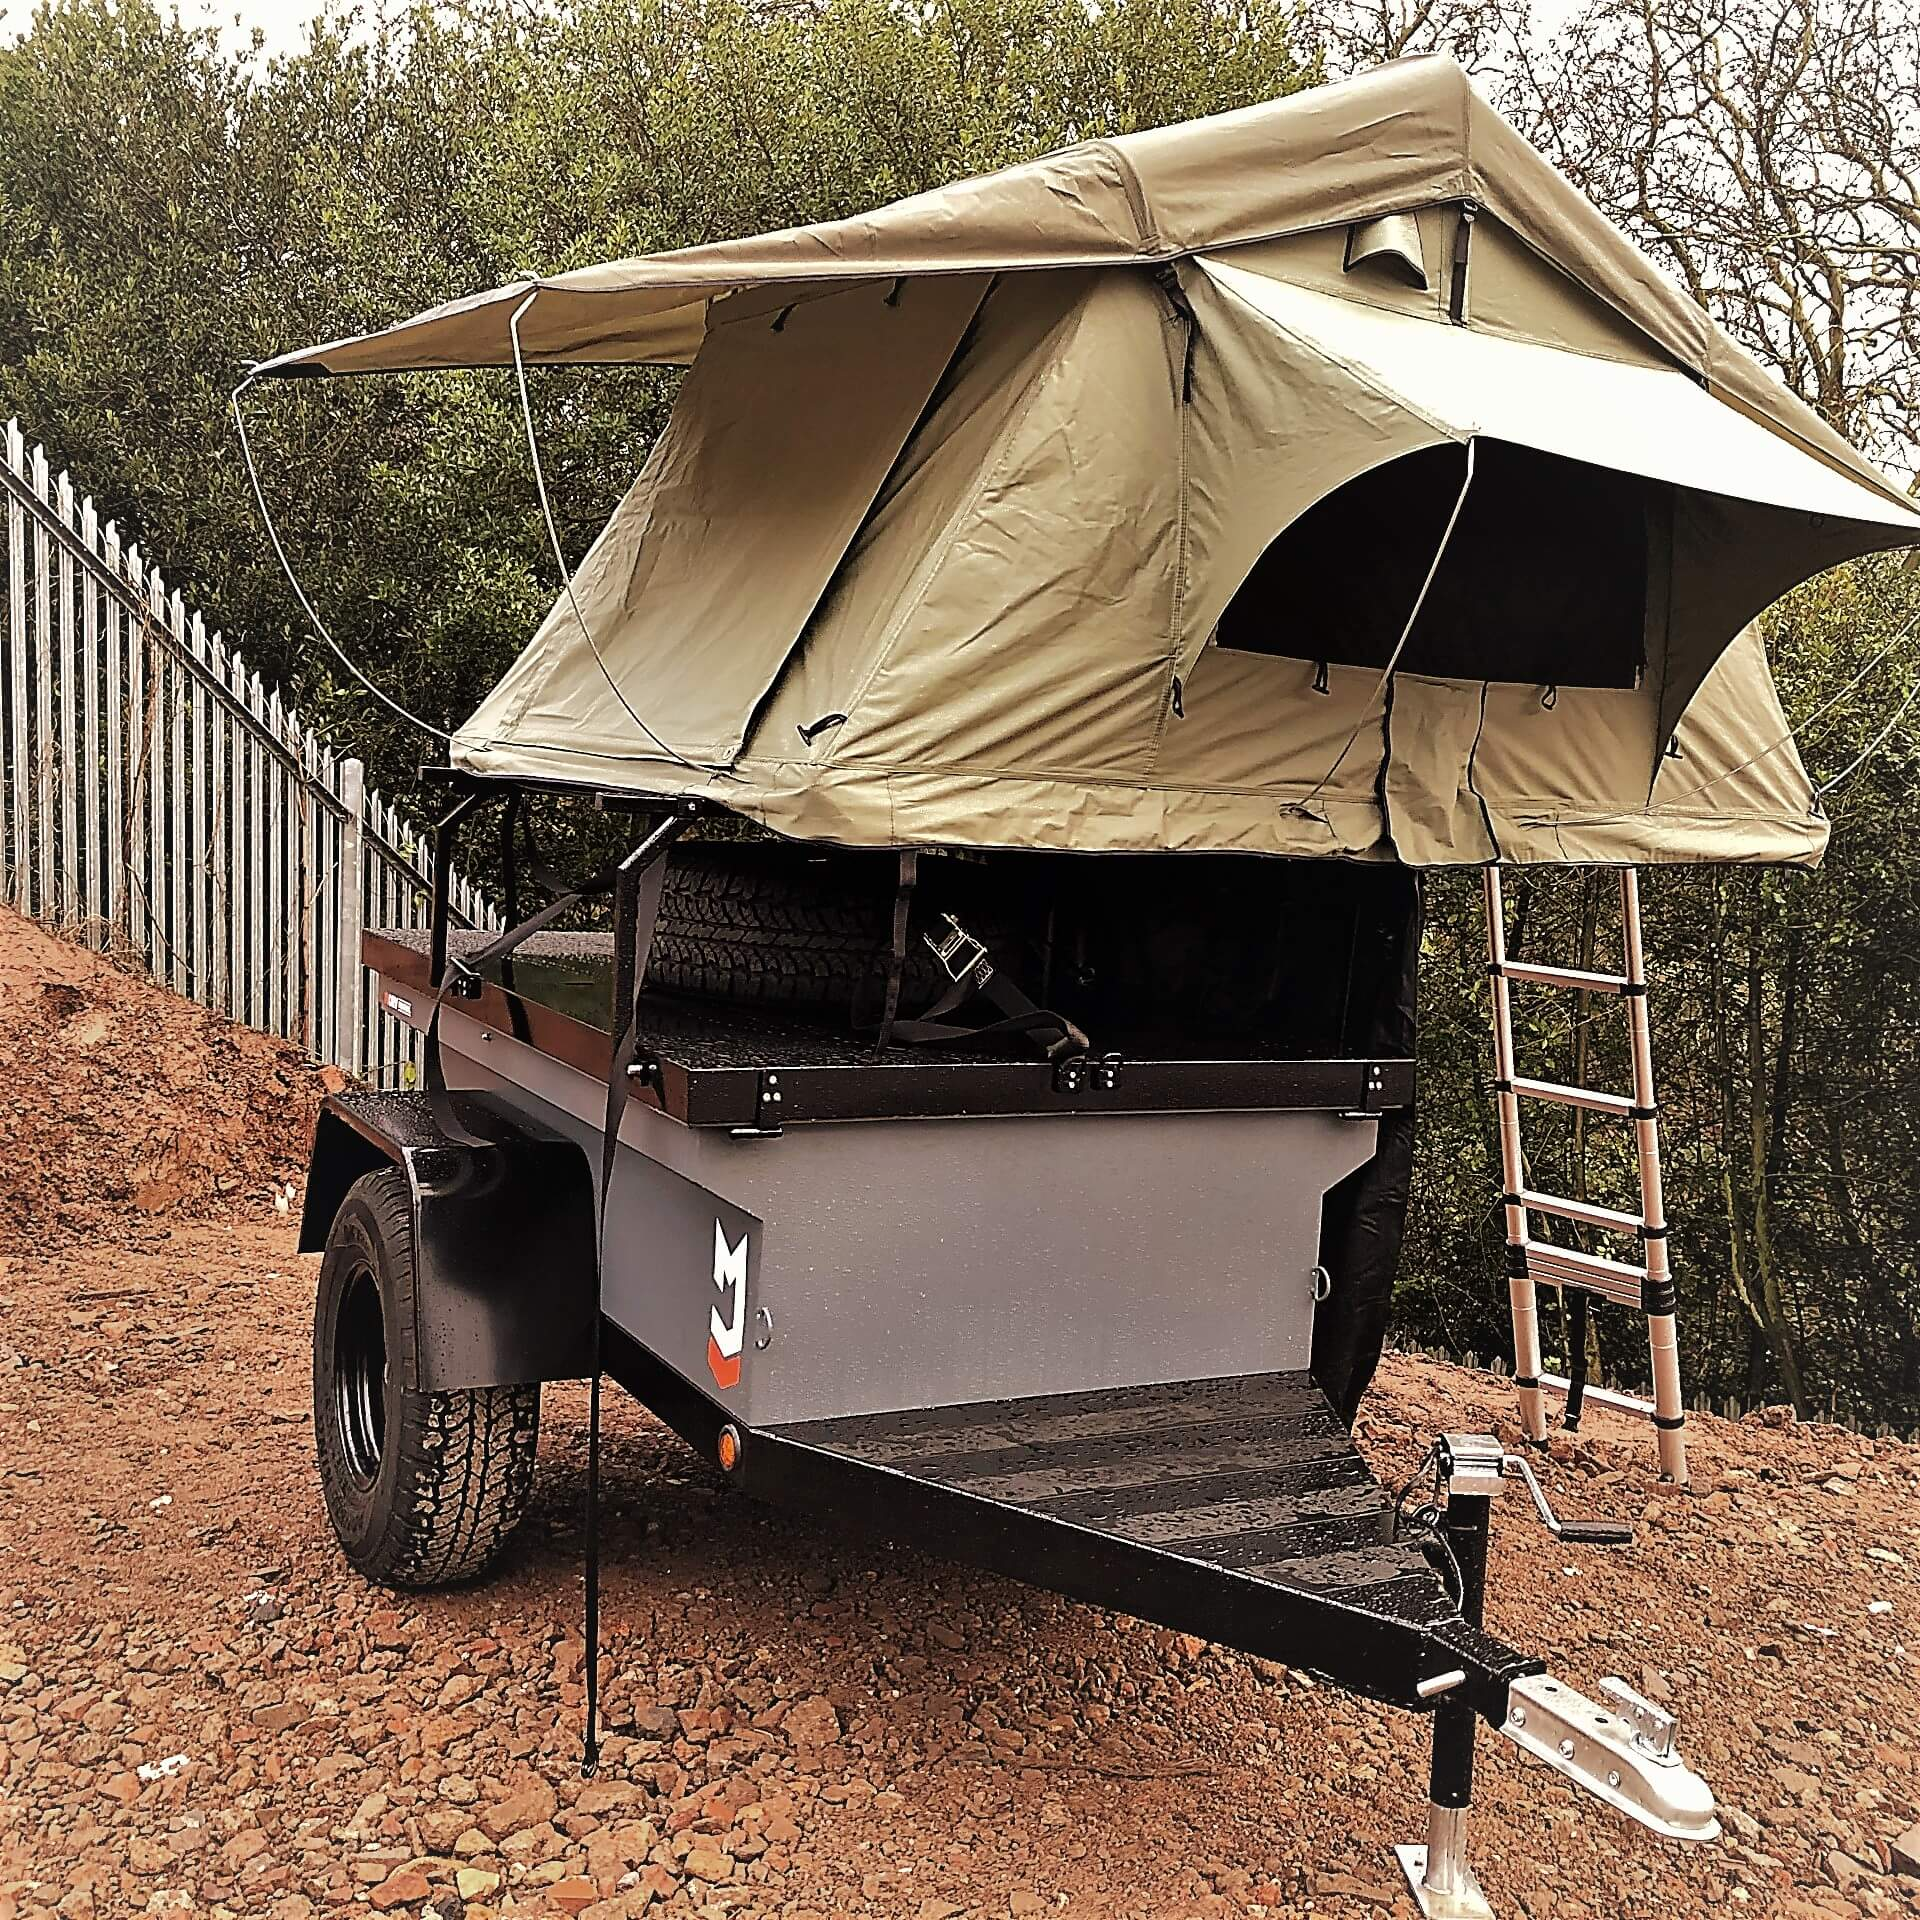 Direct4x4 Navigator expedition trailer with 3 person roof top camping tent on gravel